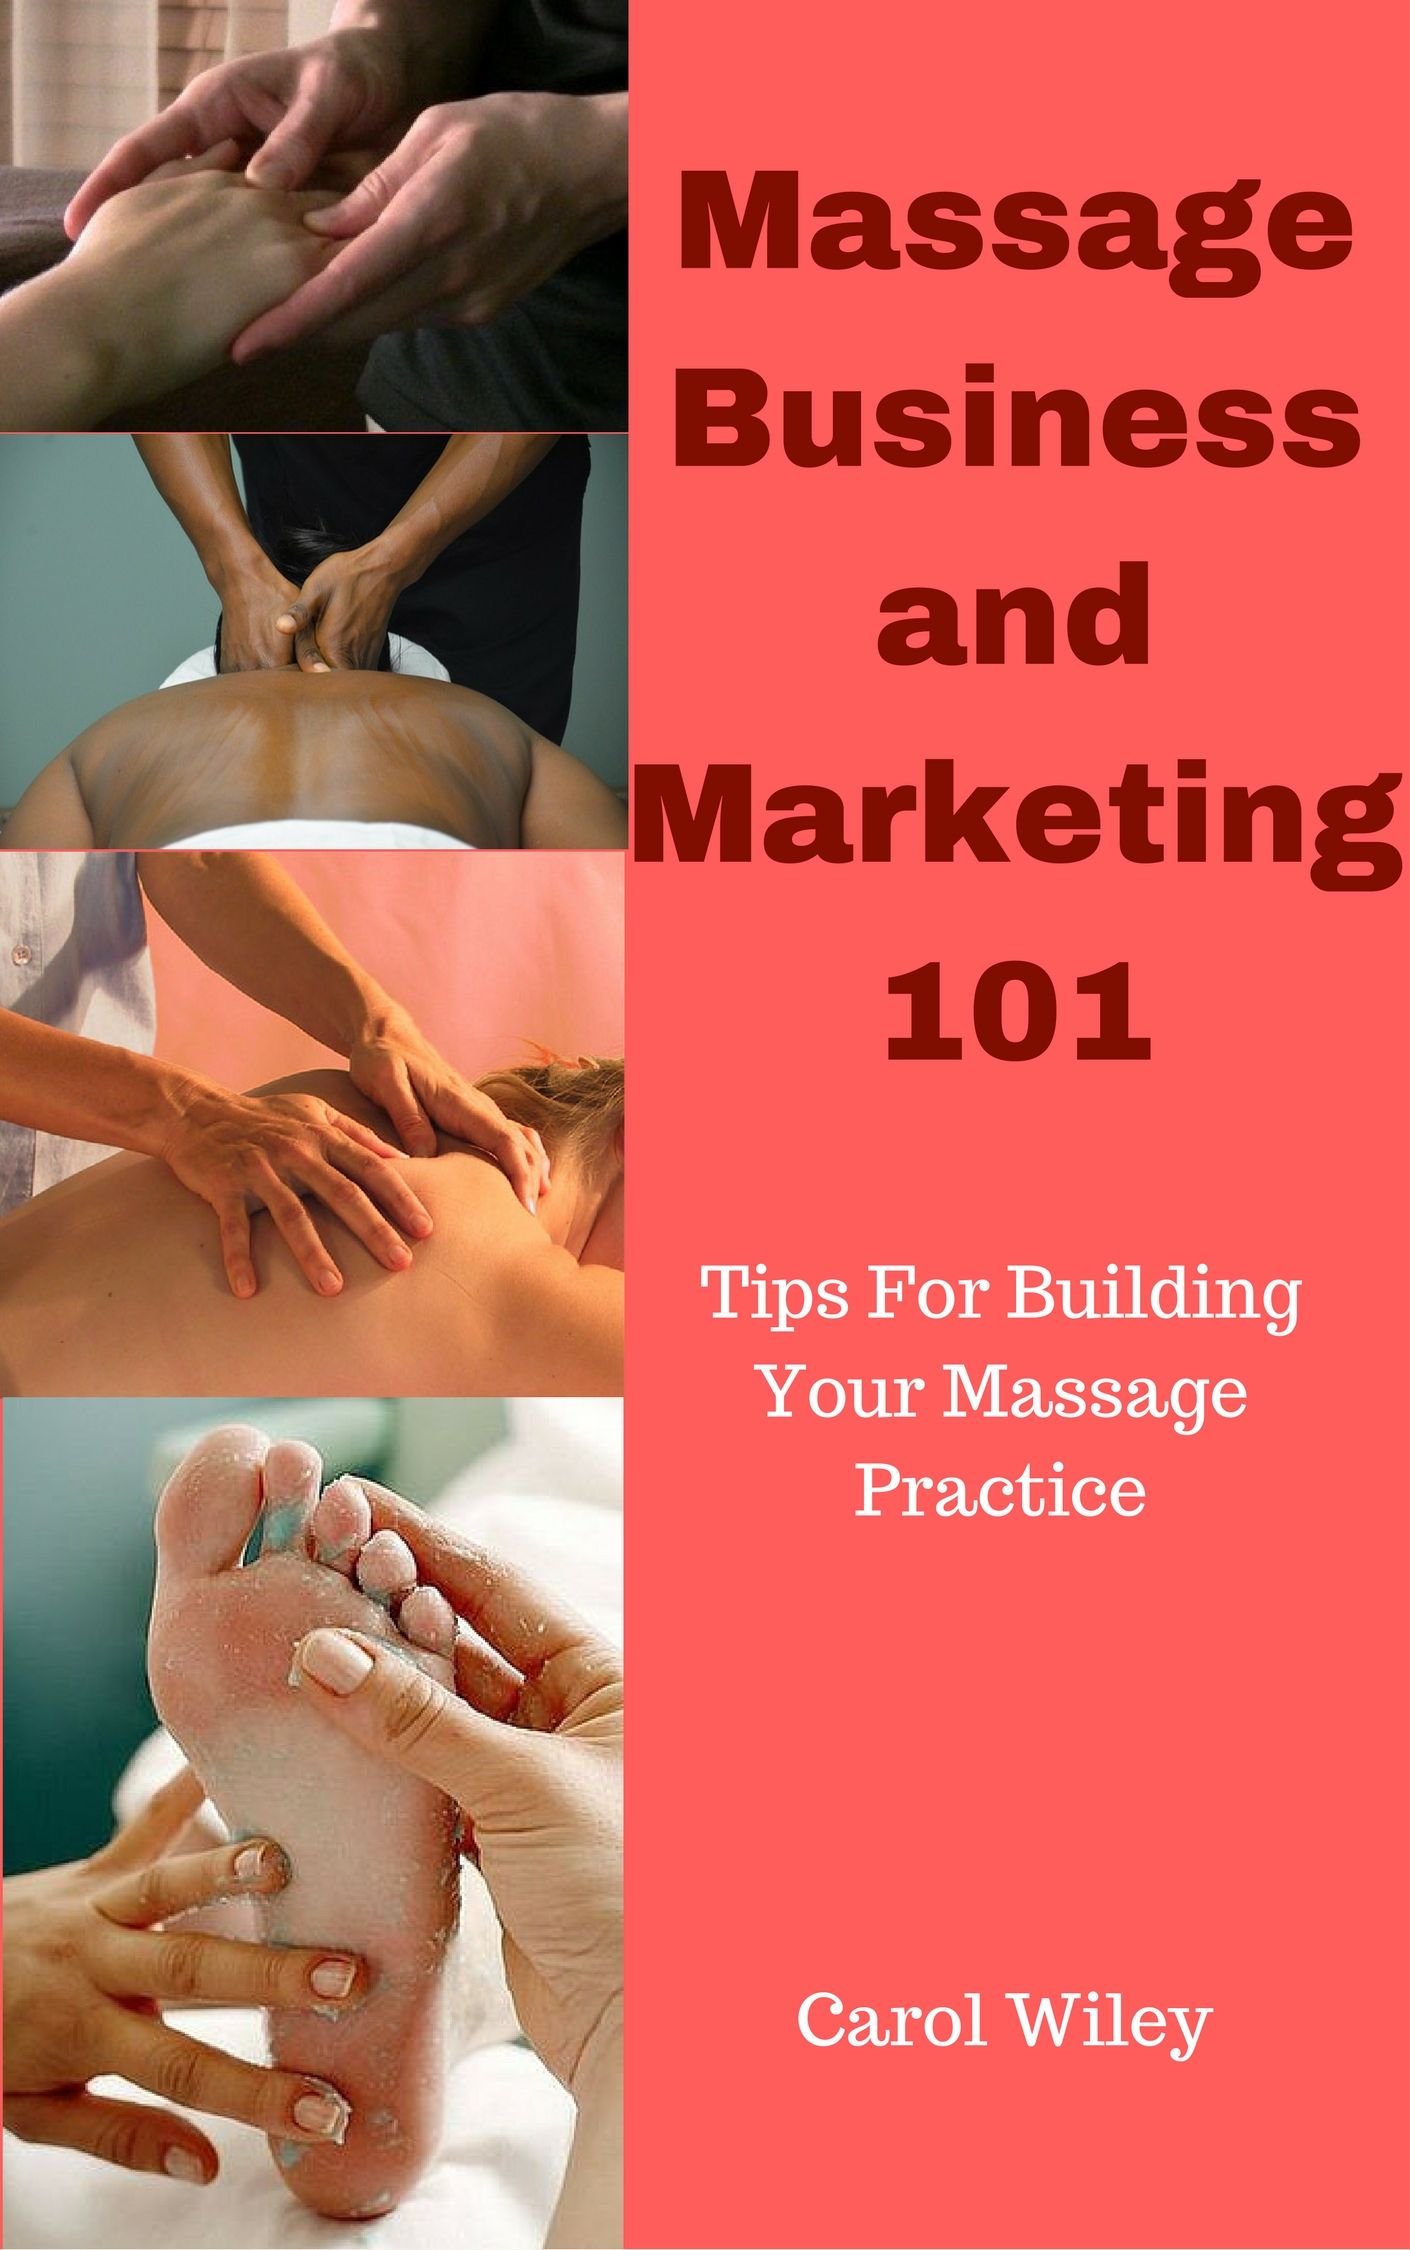 In Massage Business and Marketing 101, Carol Wiley, who